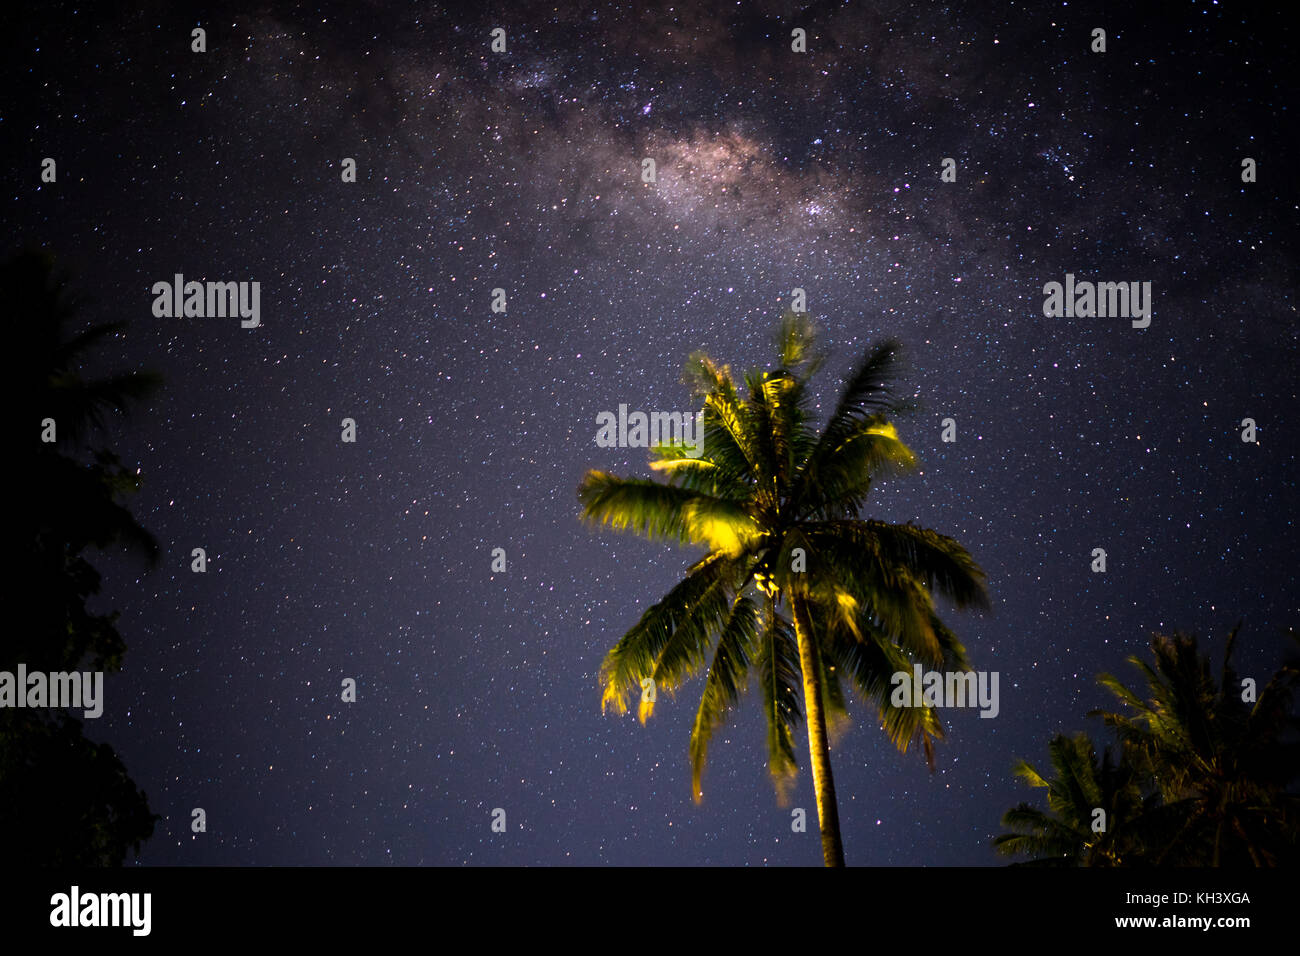 Milkyway behind palm trees in Indonesia - Stock Image